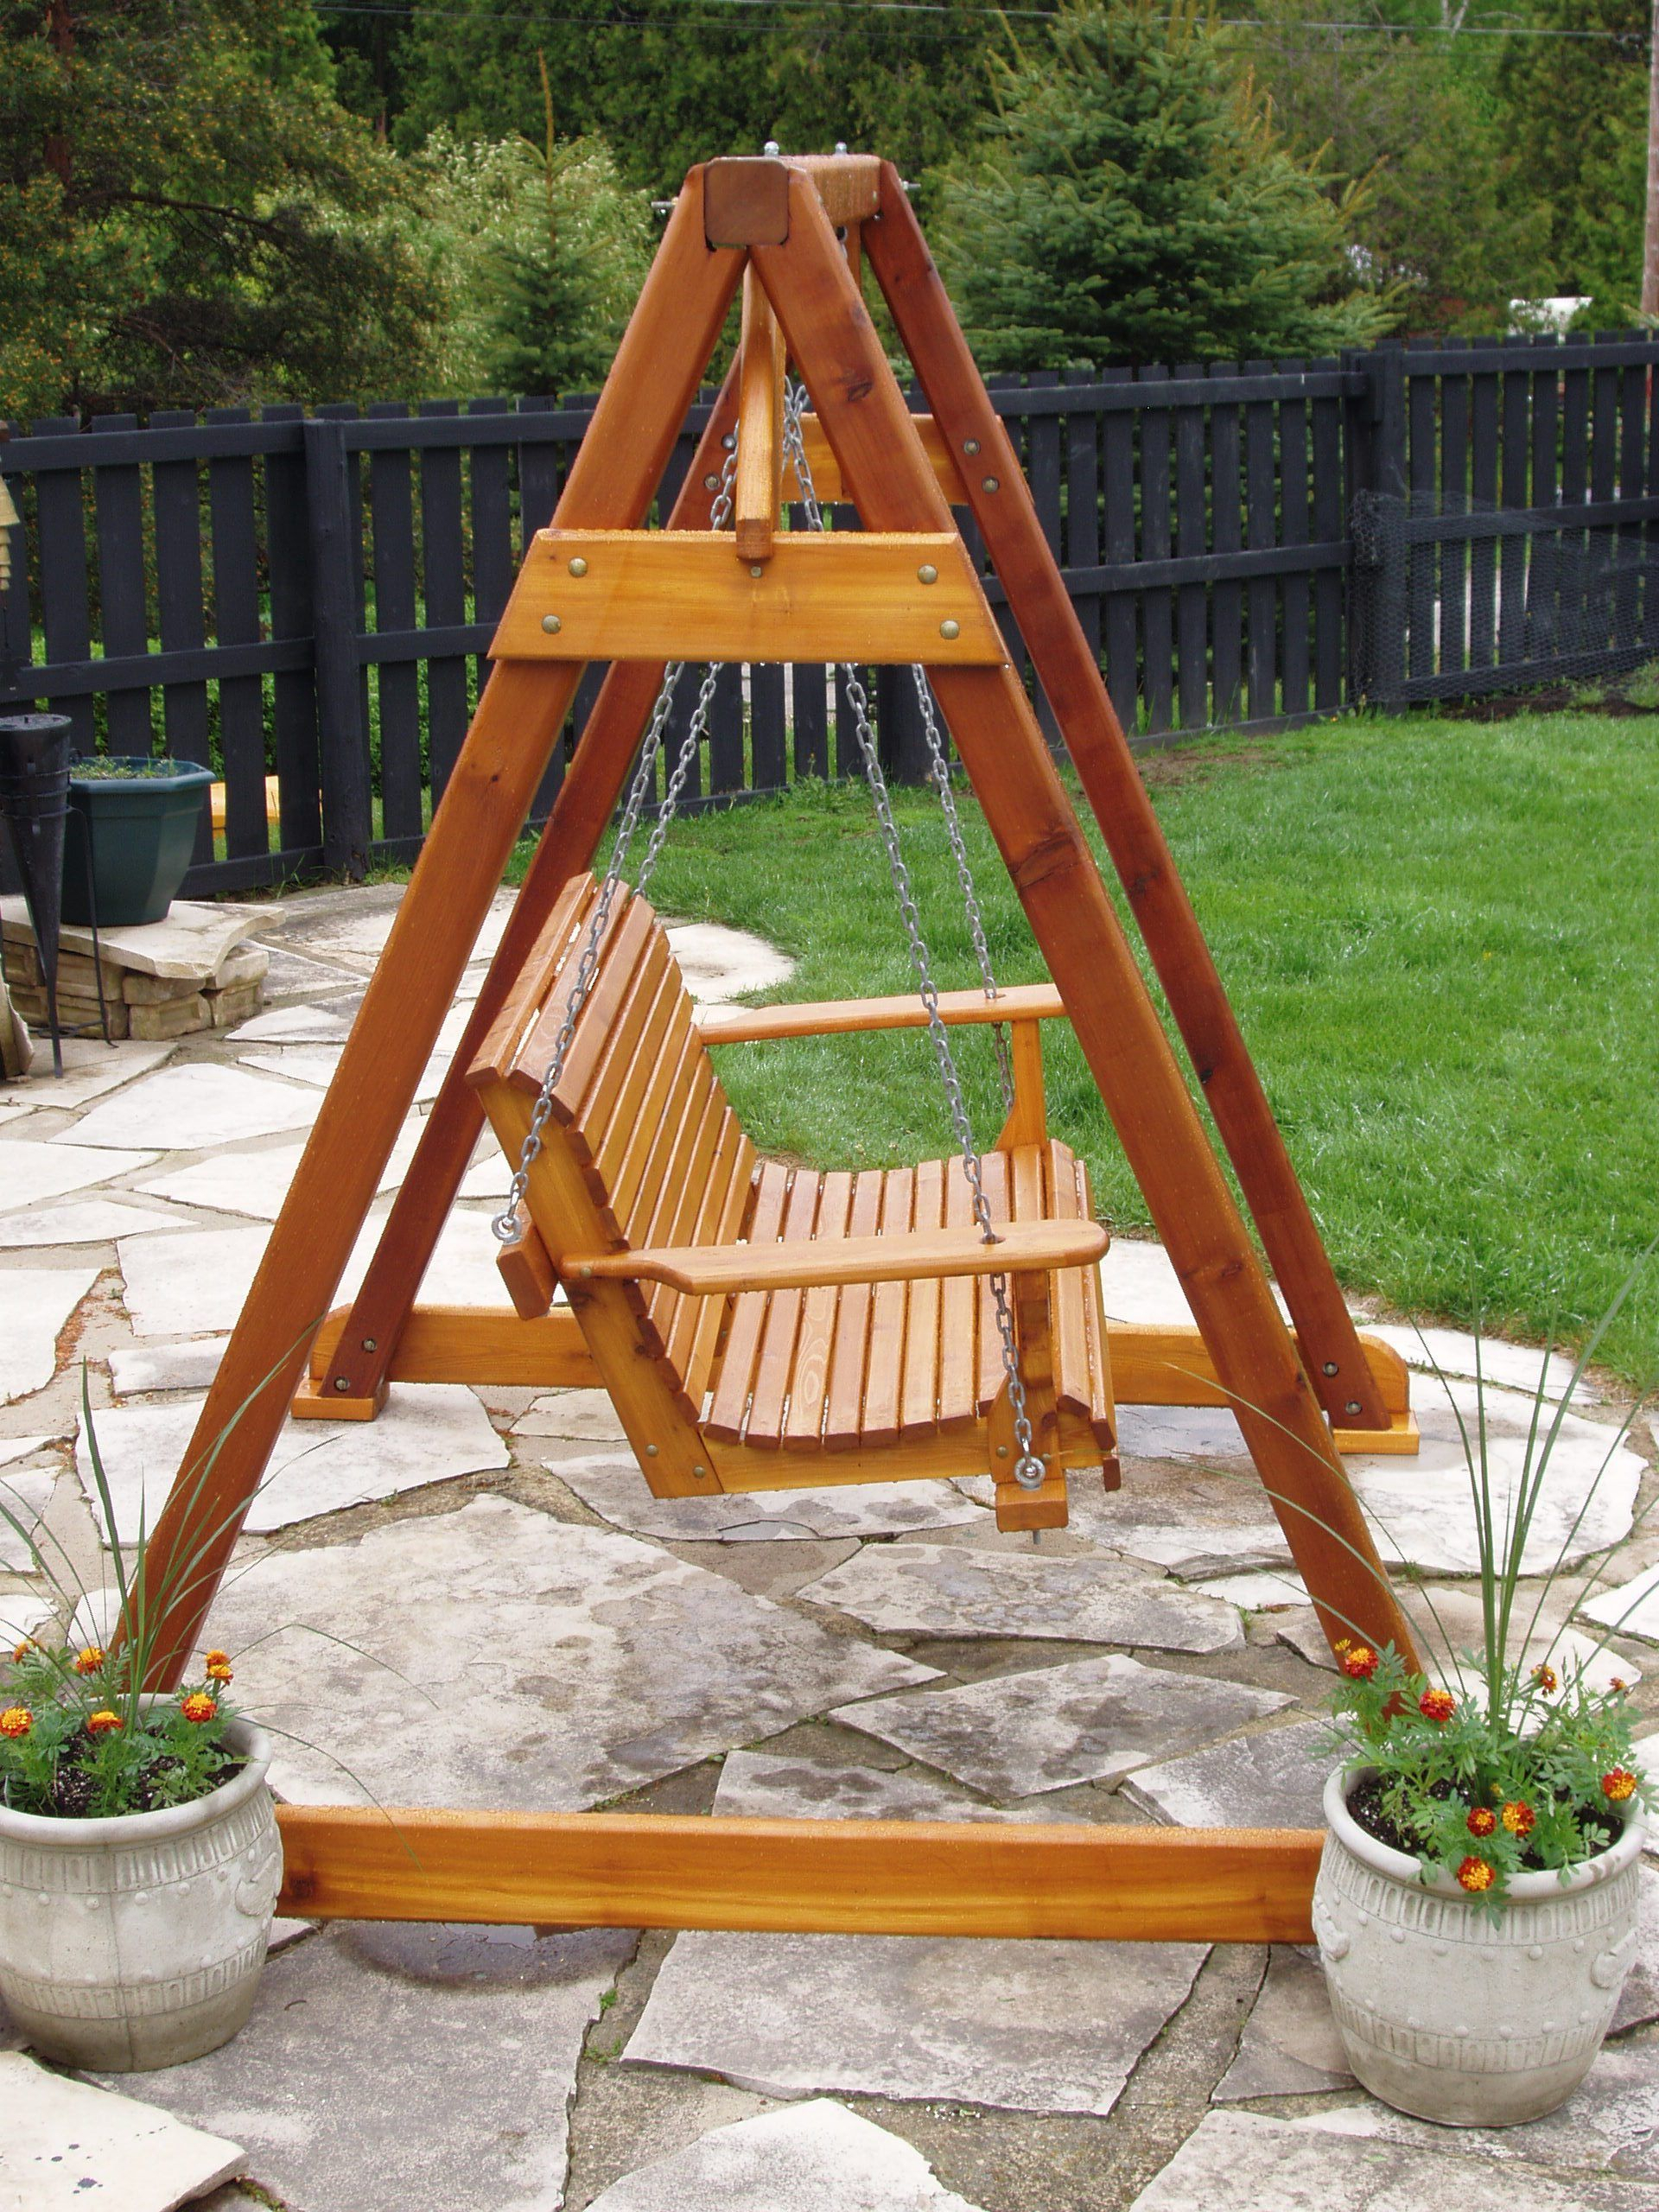 Build Diy How To Build A Frame Porch Swing Stand Pdf Plans For Patio Porch Swings With Stand (View 4 of 25)